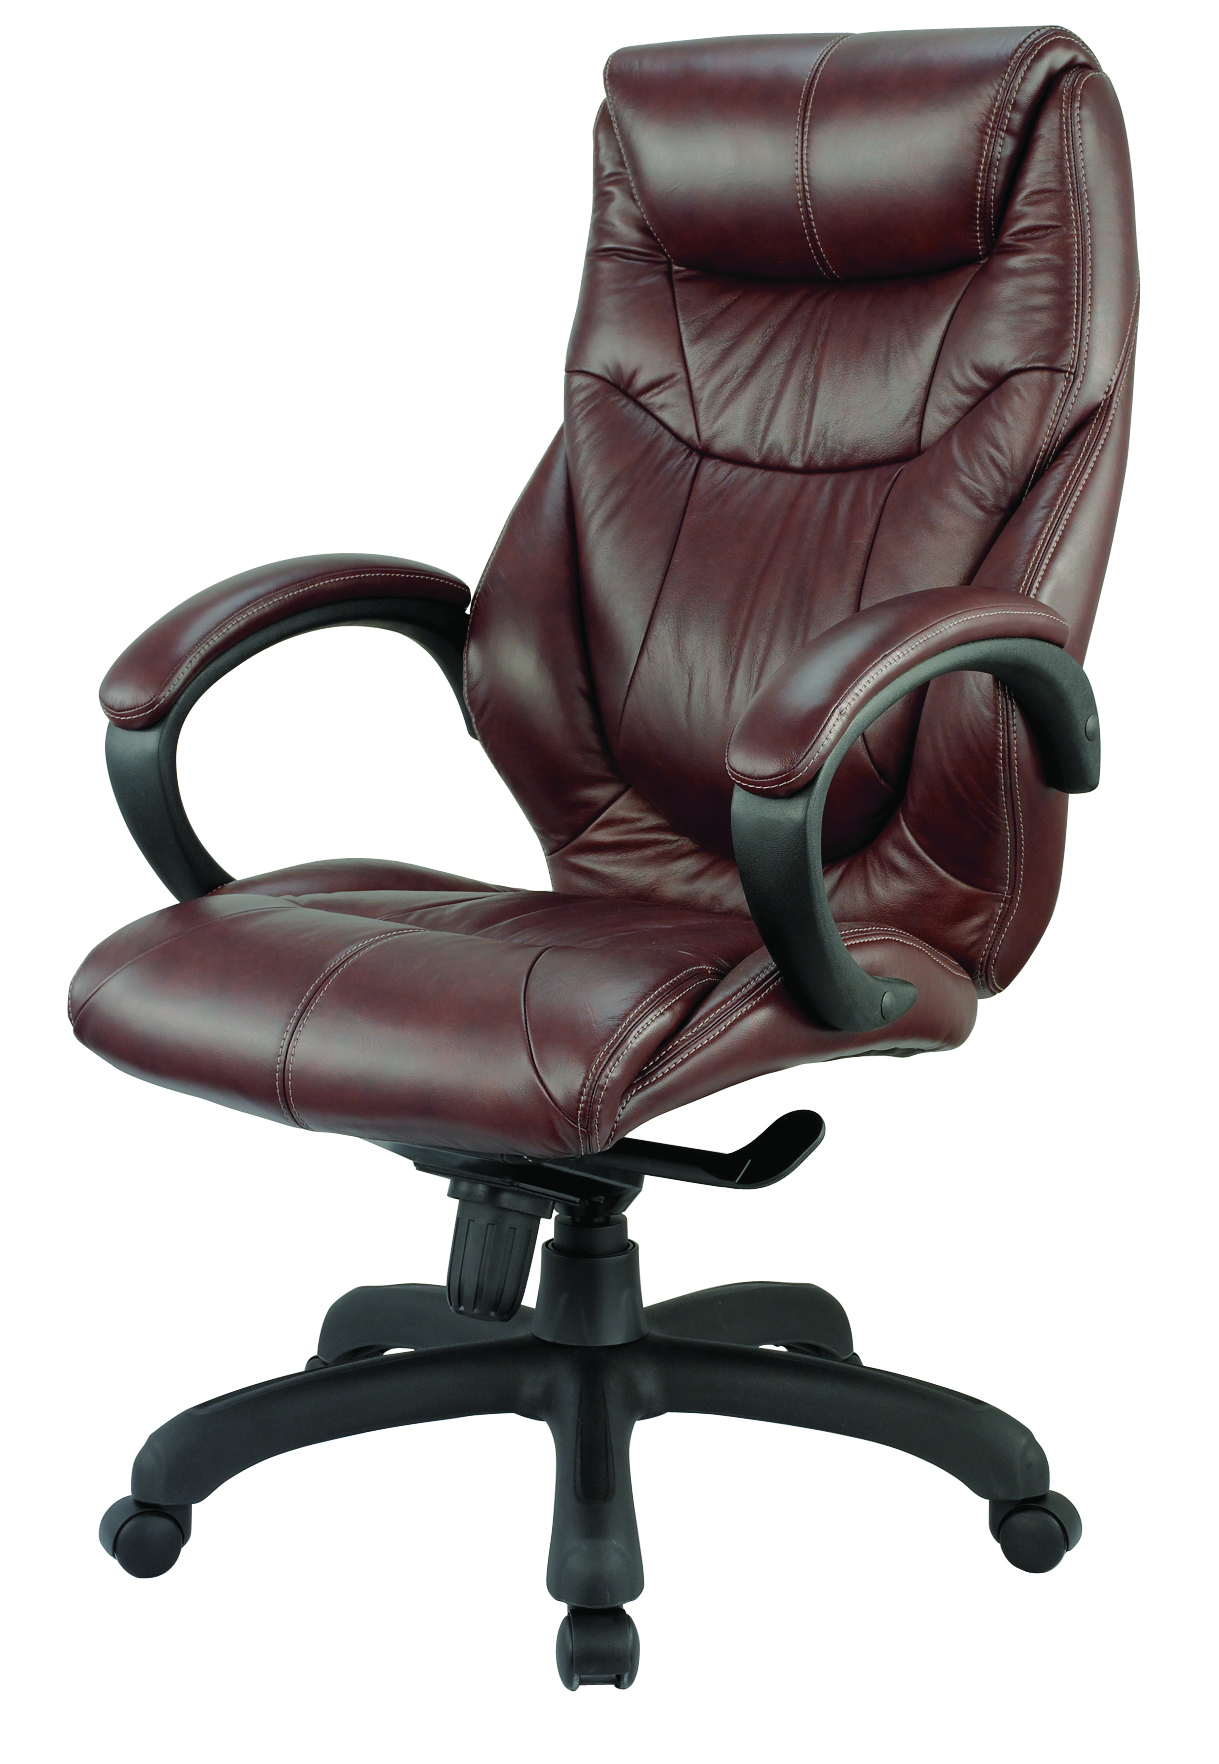 genuine leather chair lazyboy desk executive office chairs canada